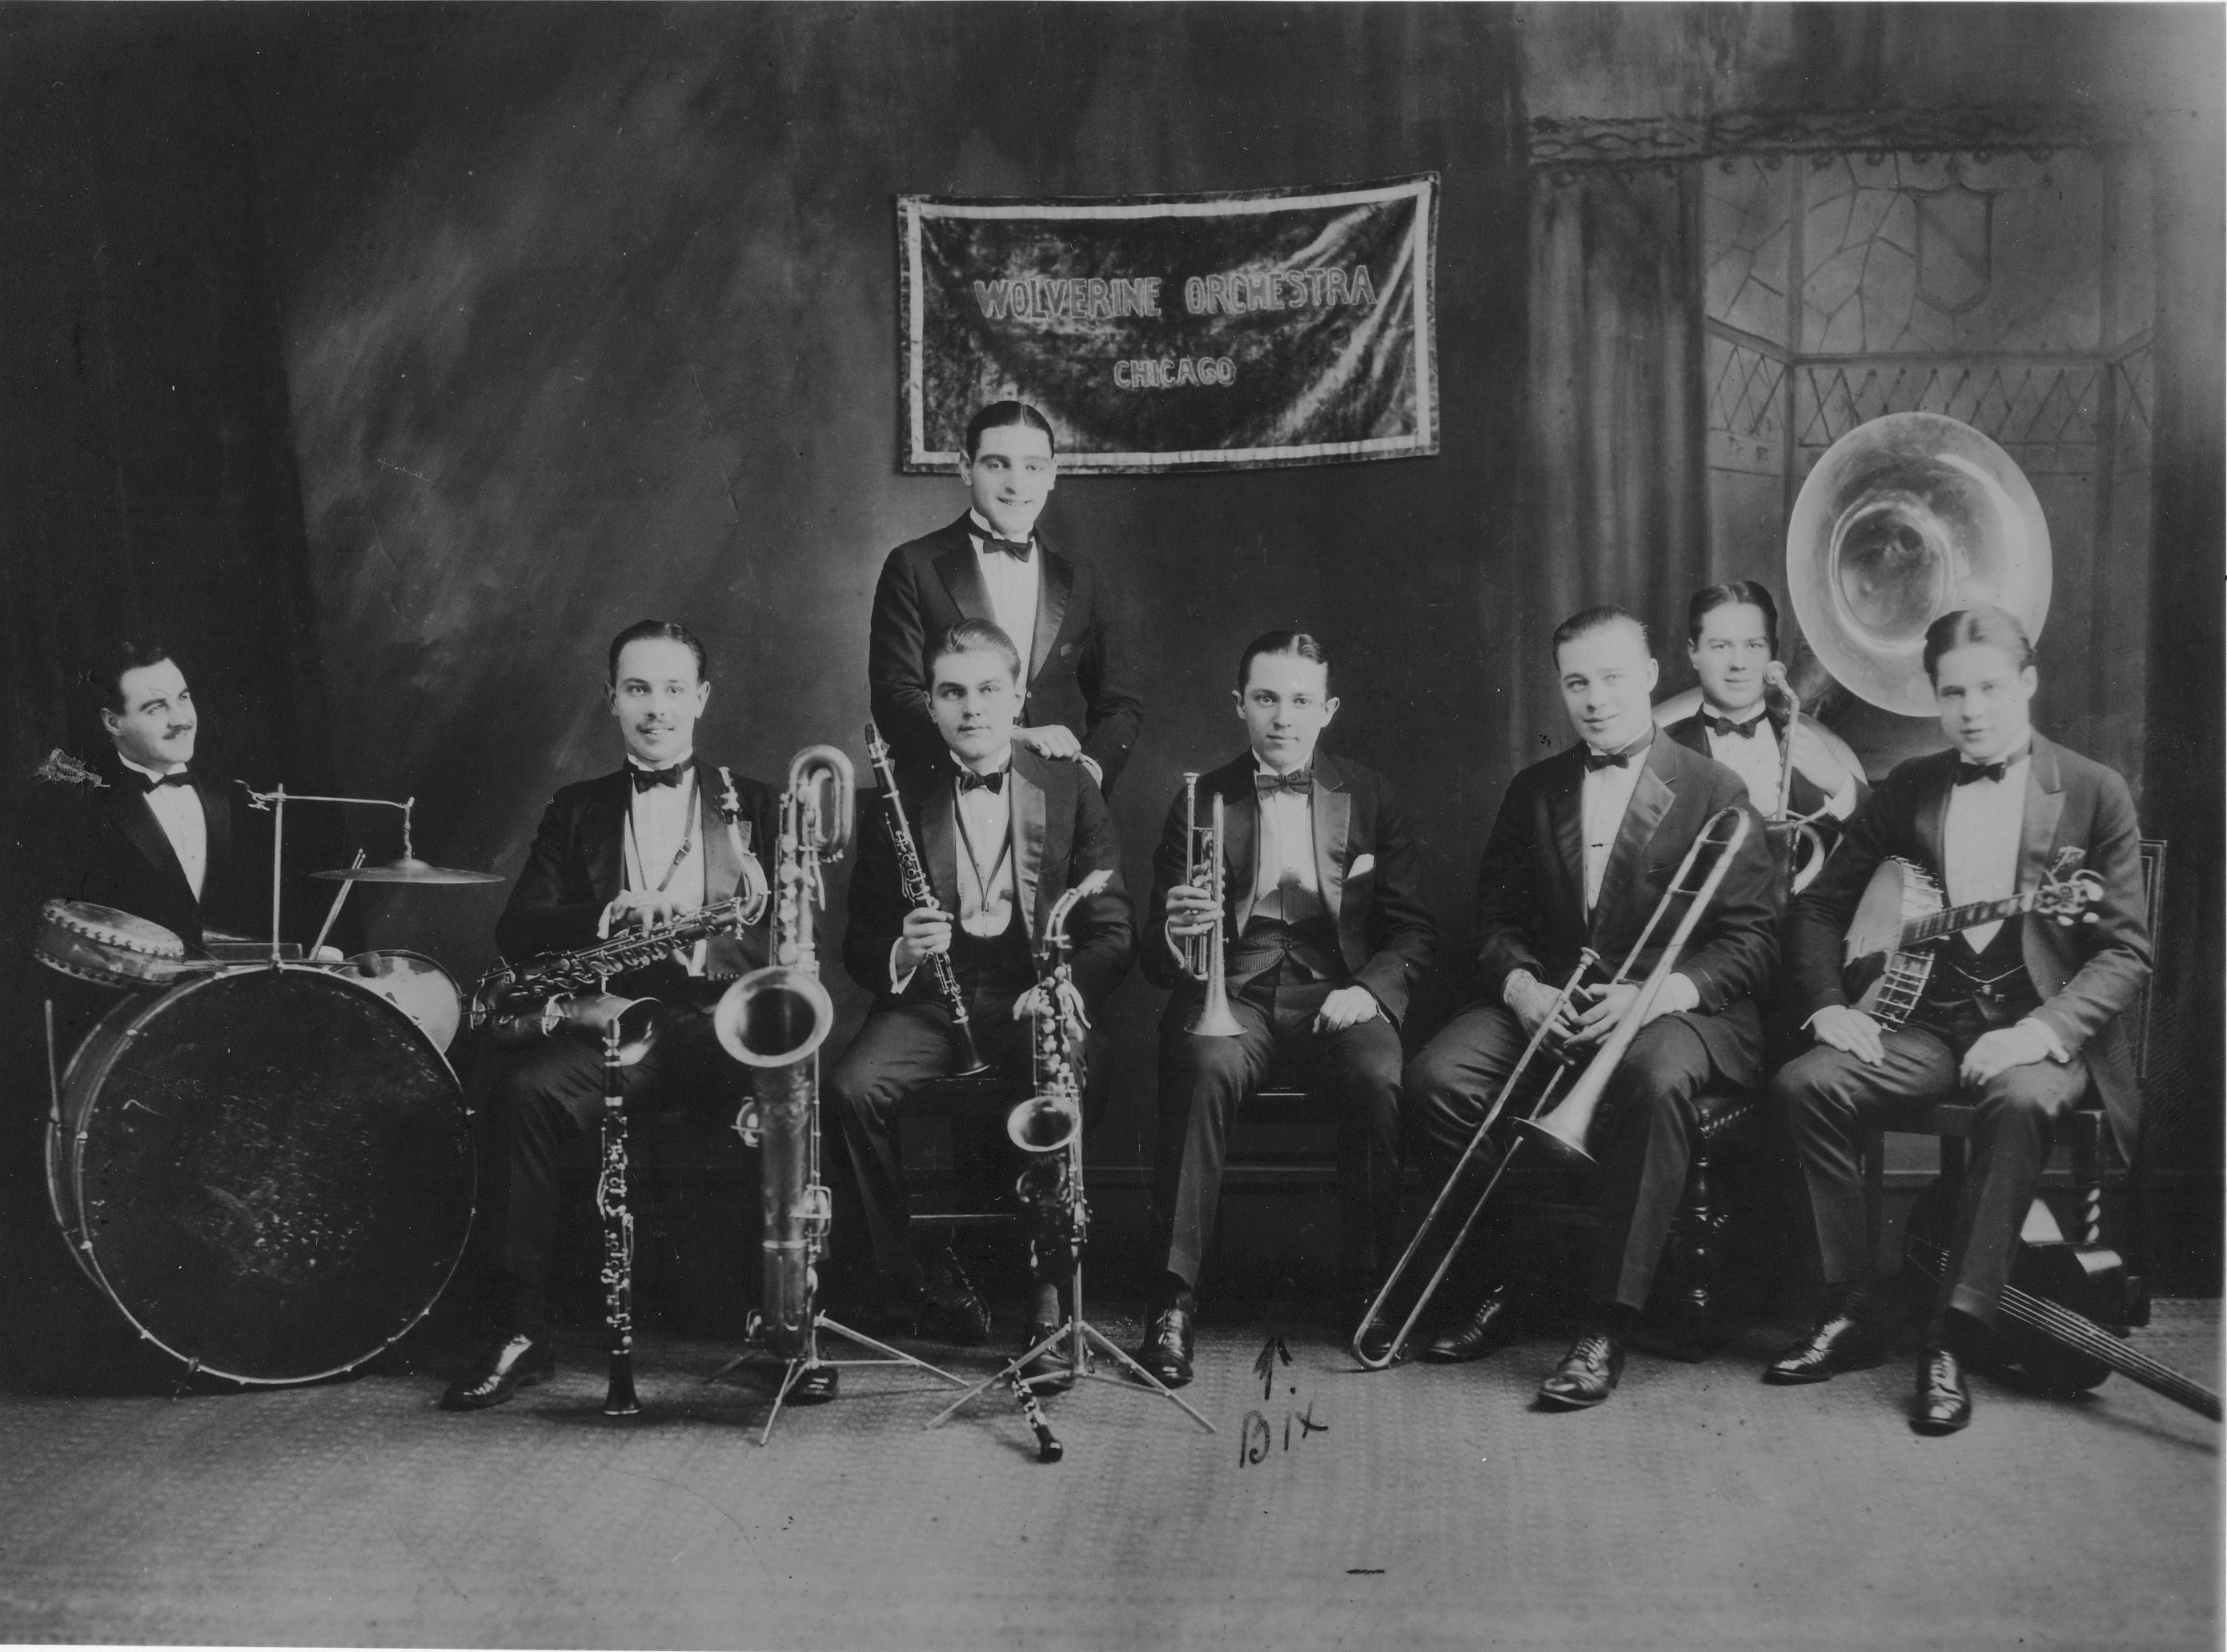 an unnamed jazz group from the 1920's